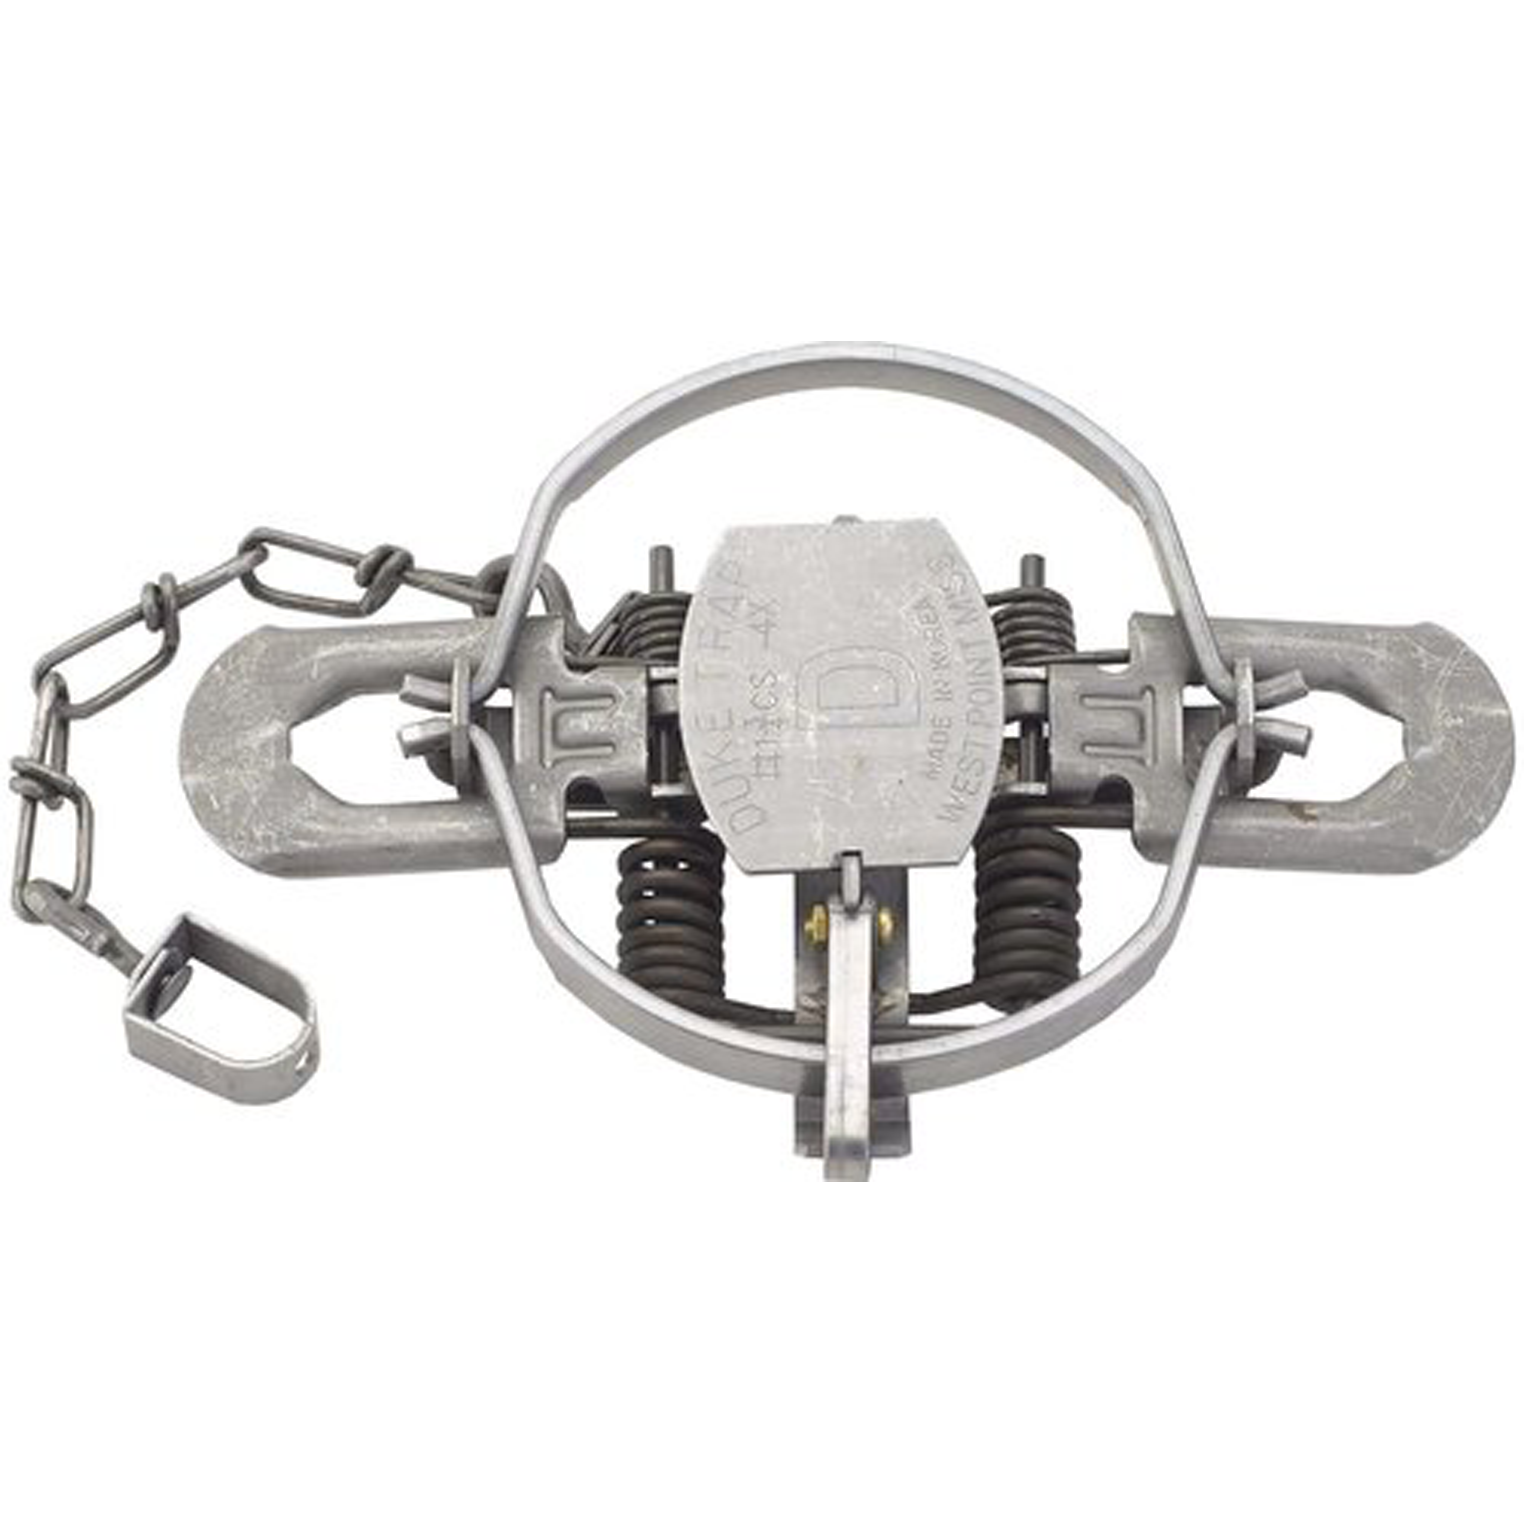 Duke 1 3/4 Four Coil Spring Trap